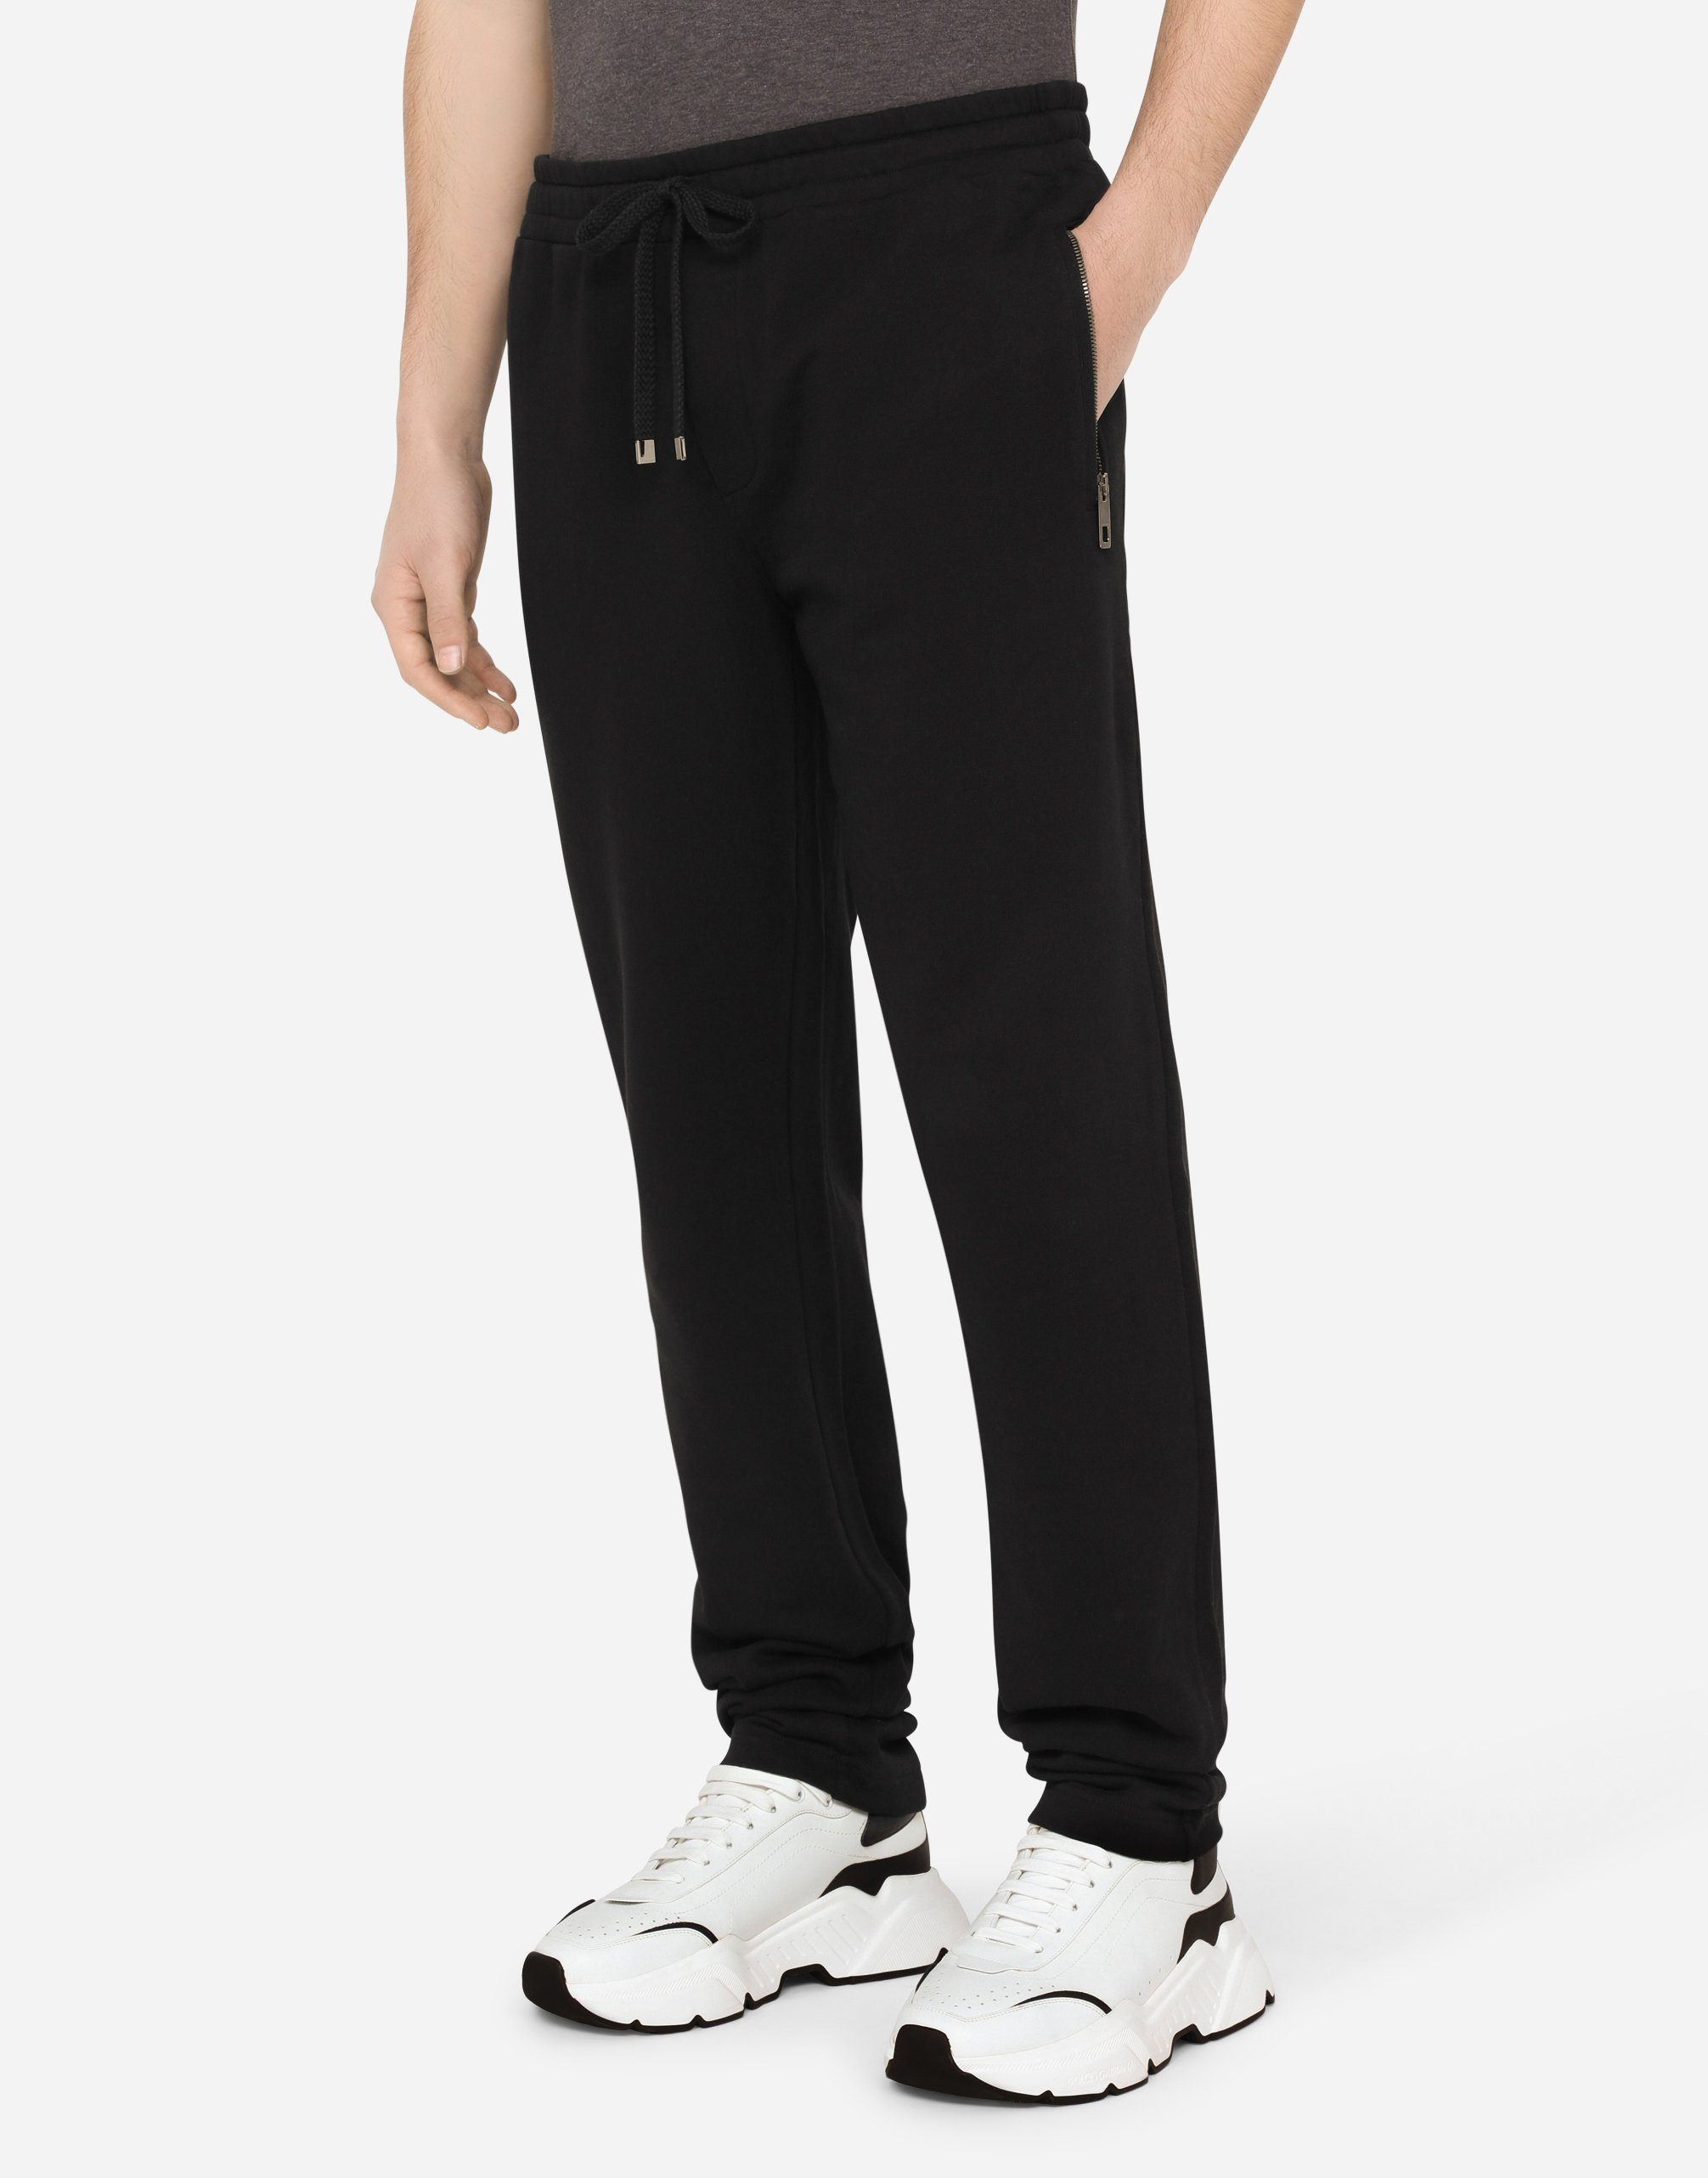 Dolce & Gabbana COTTON SWEATPANTS